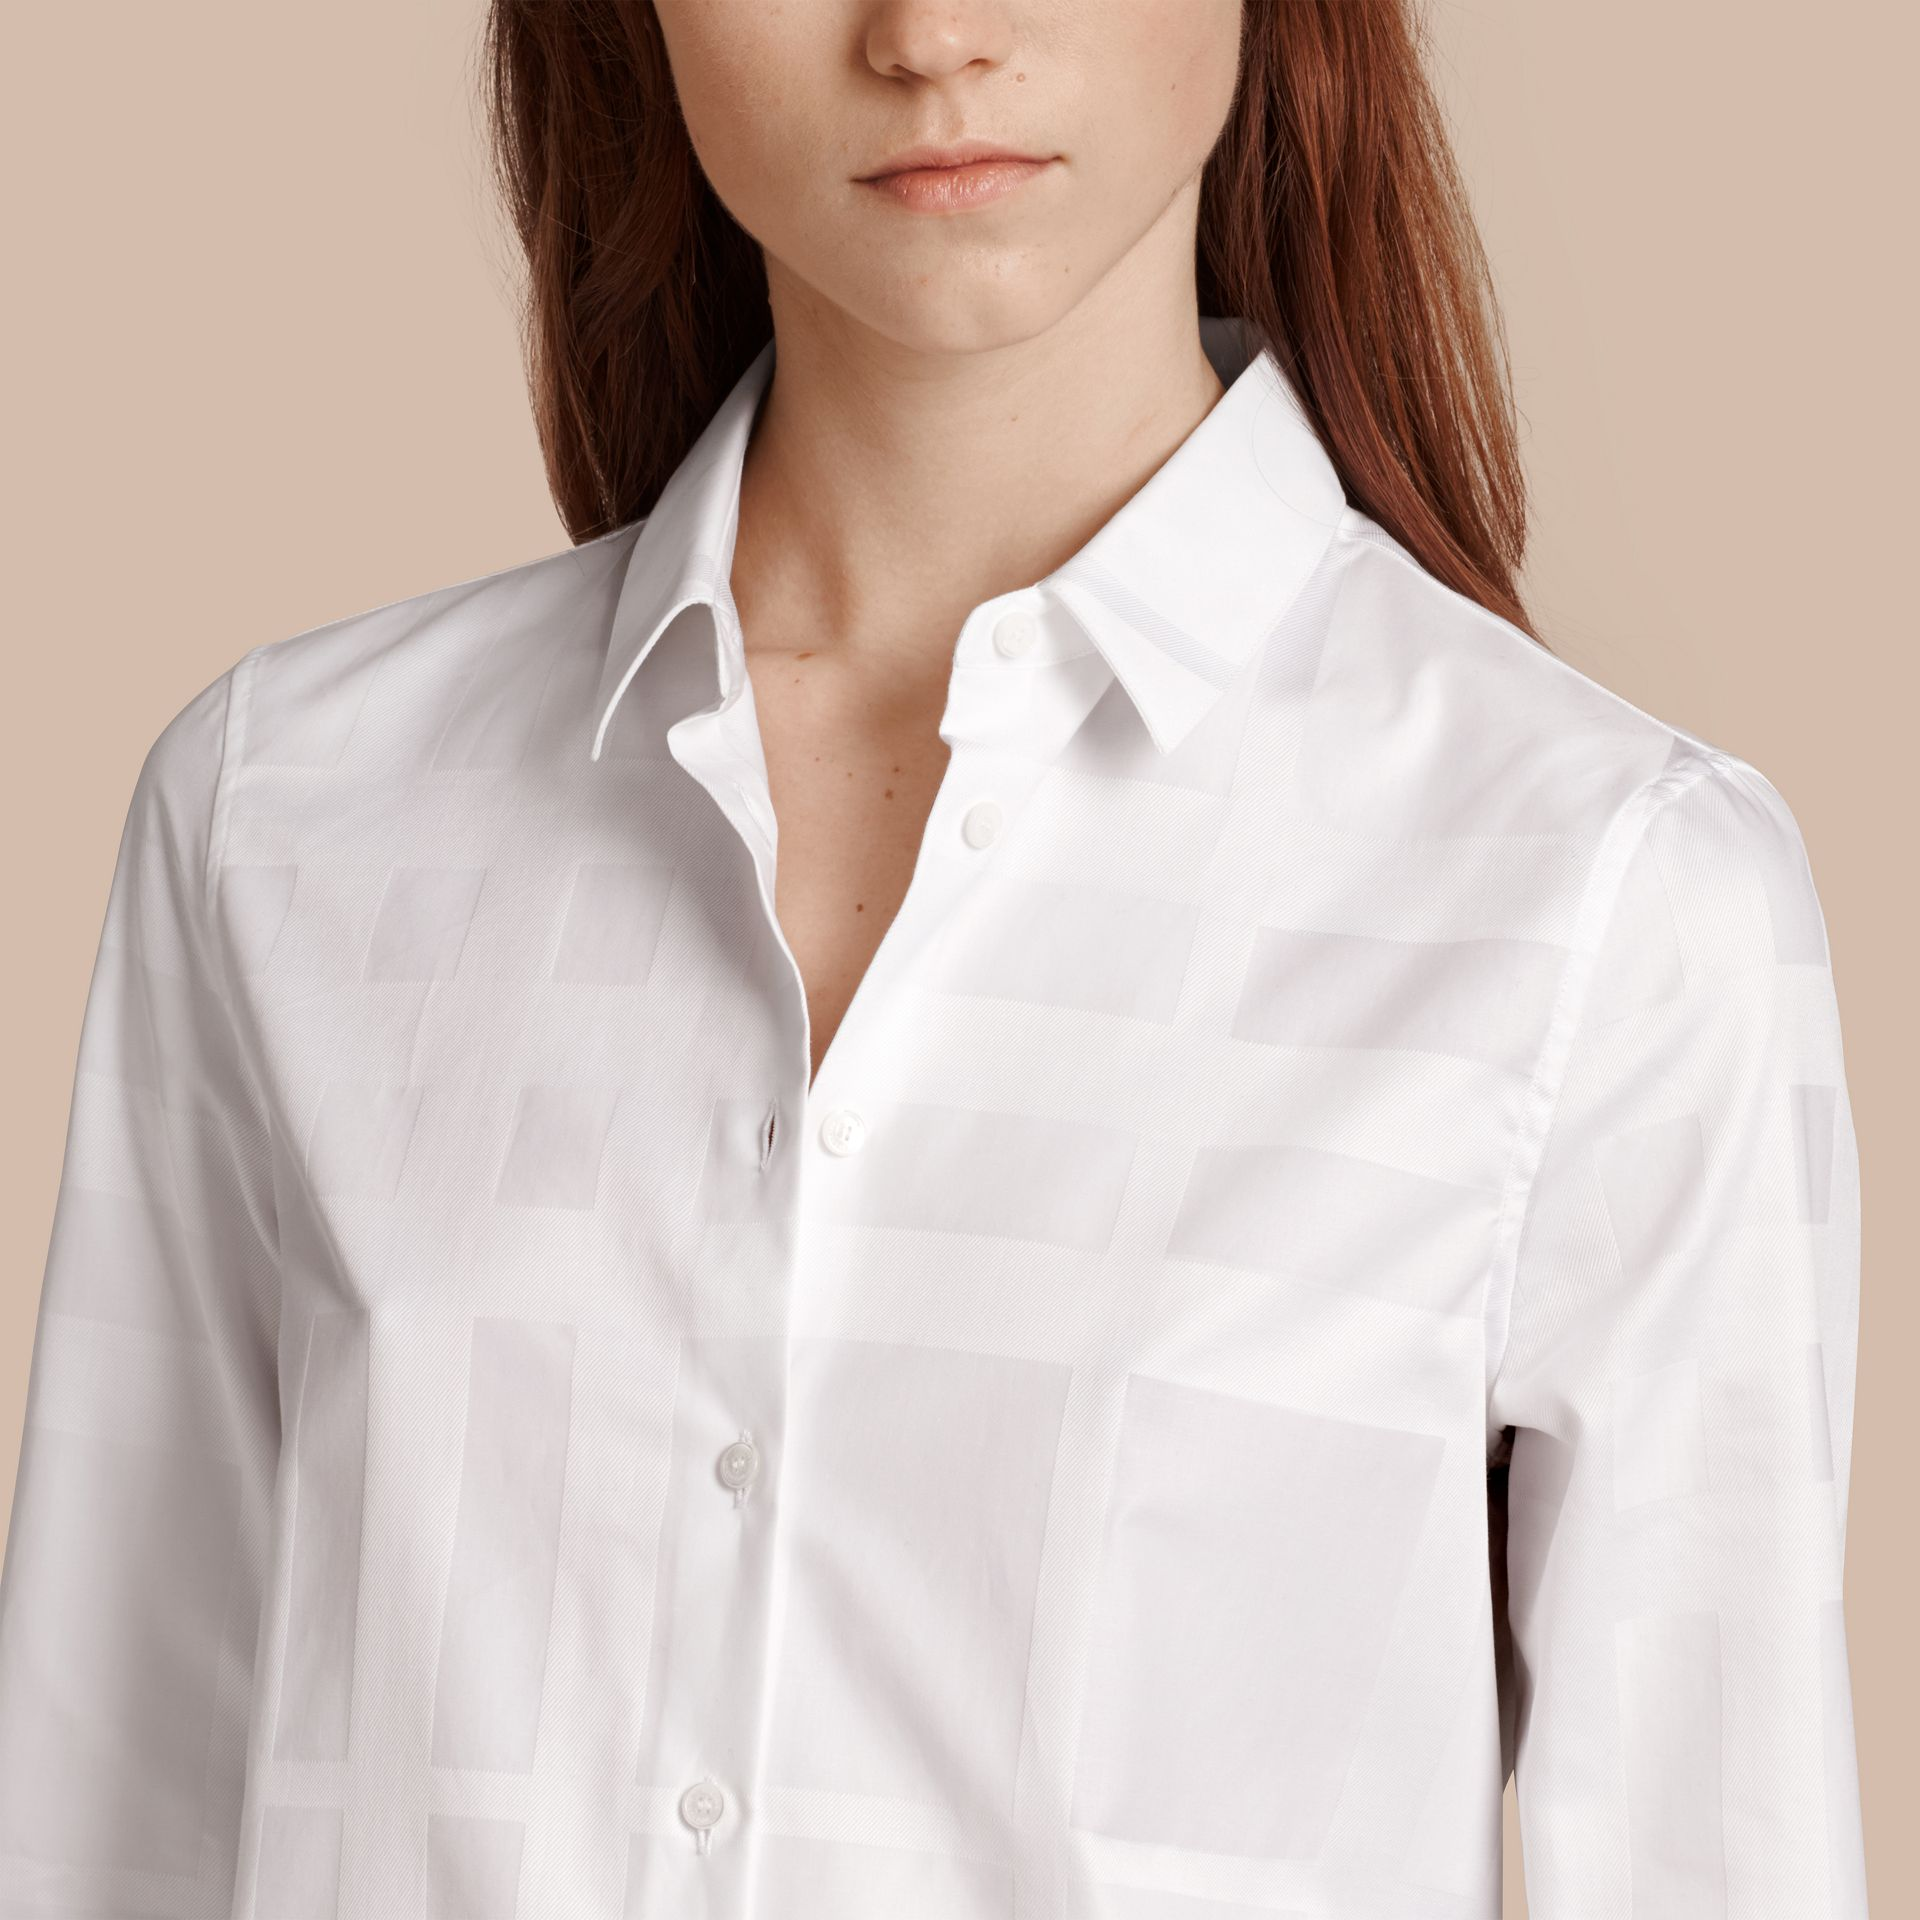 White Check Jacquard Cotton Shirt White - gallery image 5